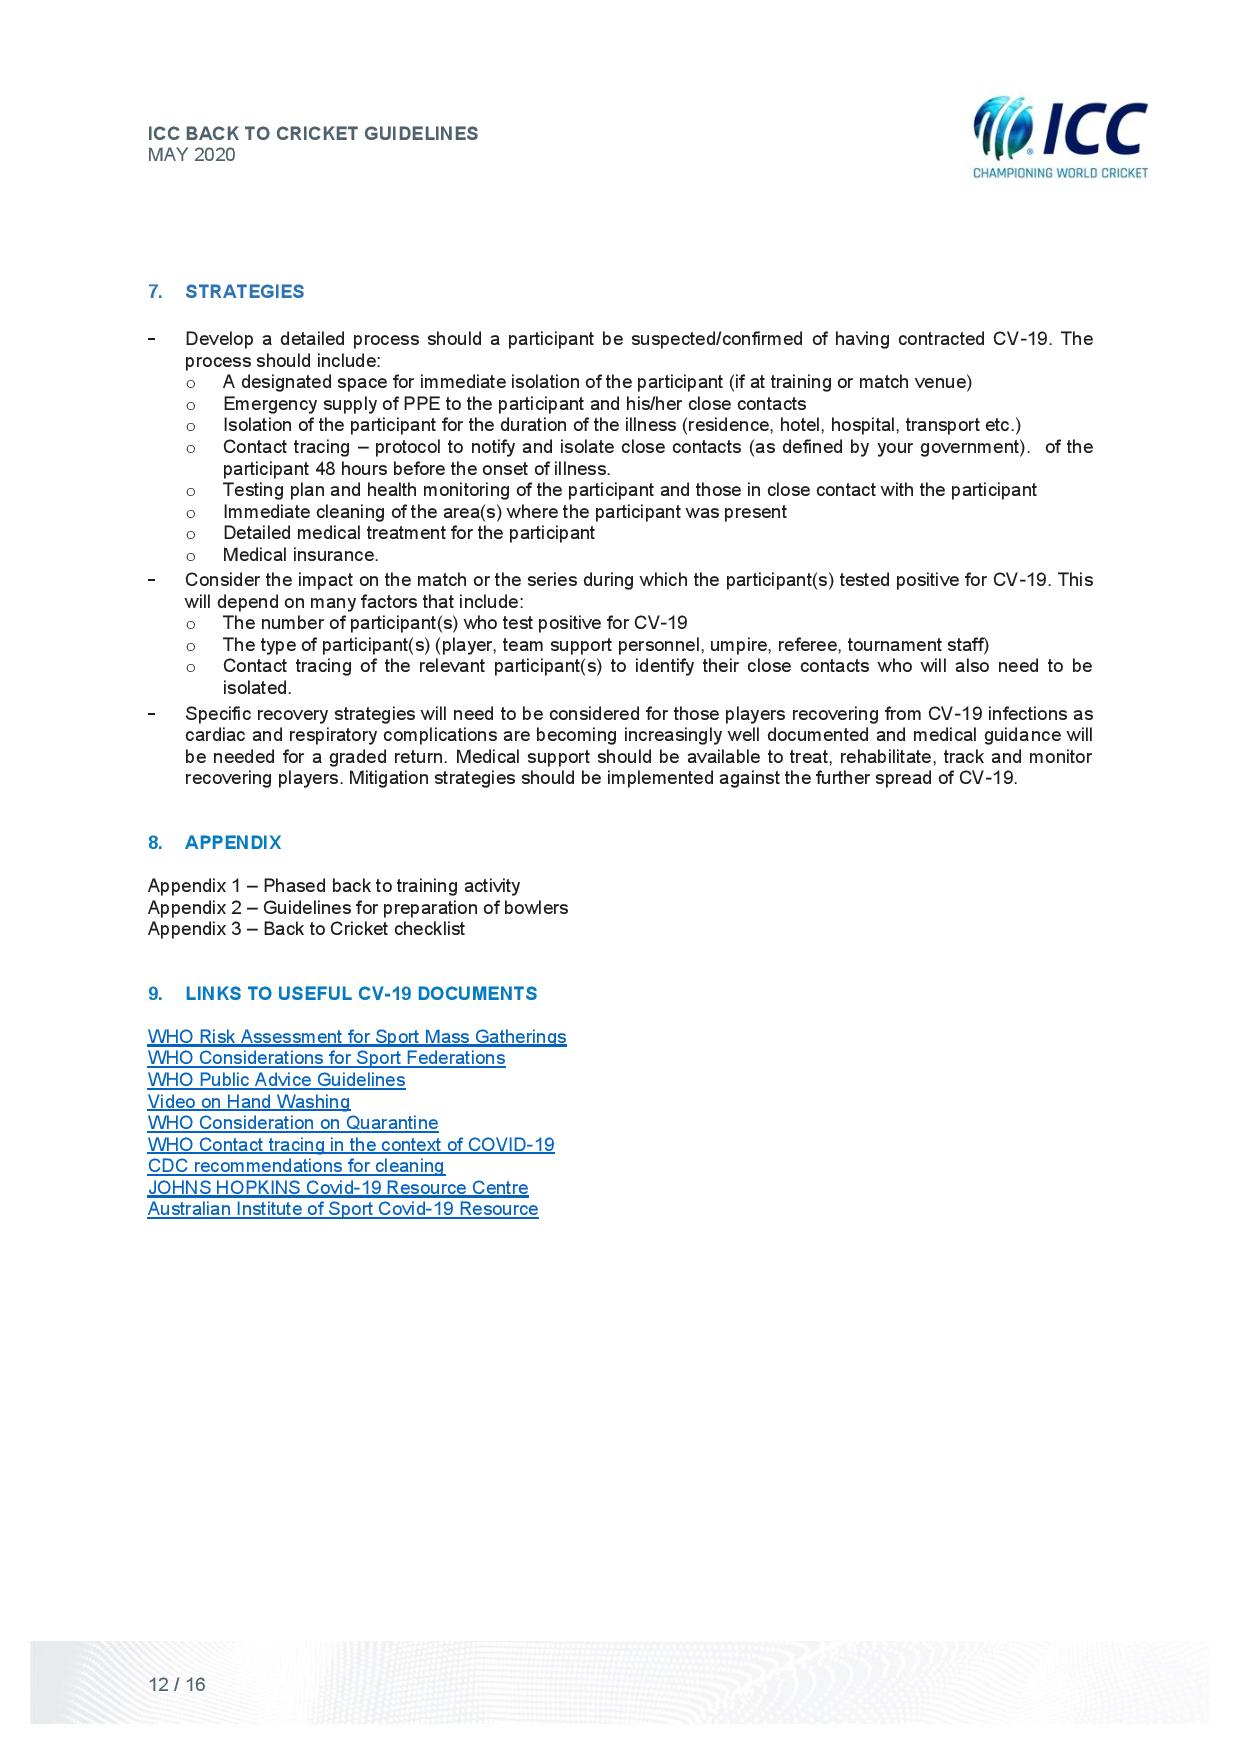 Name:  ICC-Back-to-Cricket-Guidelines-May20-final--page-012.jpg